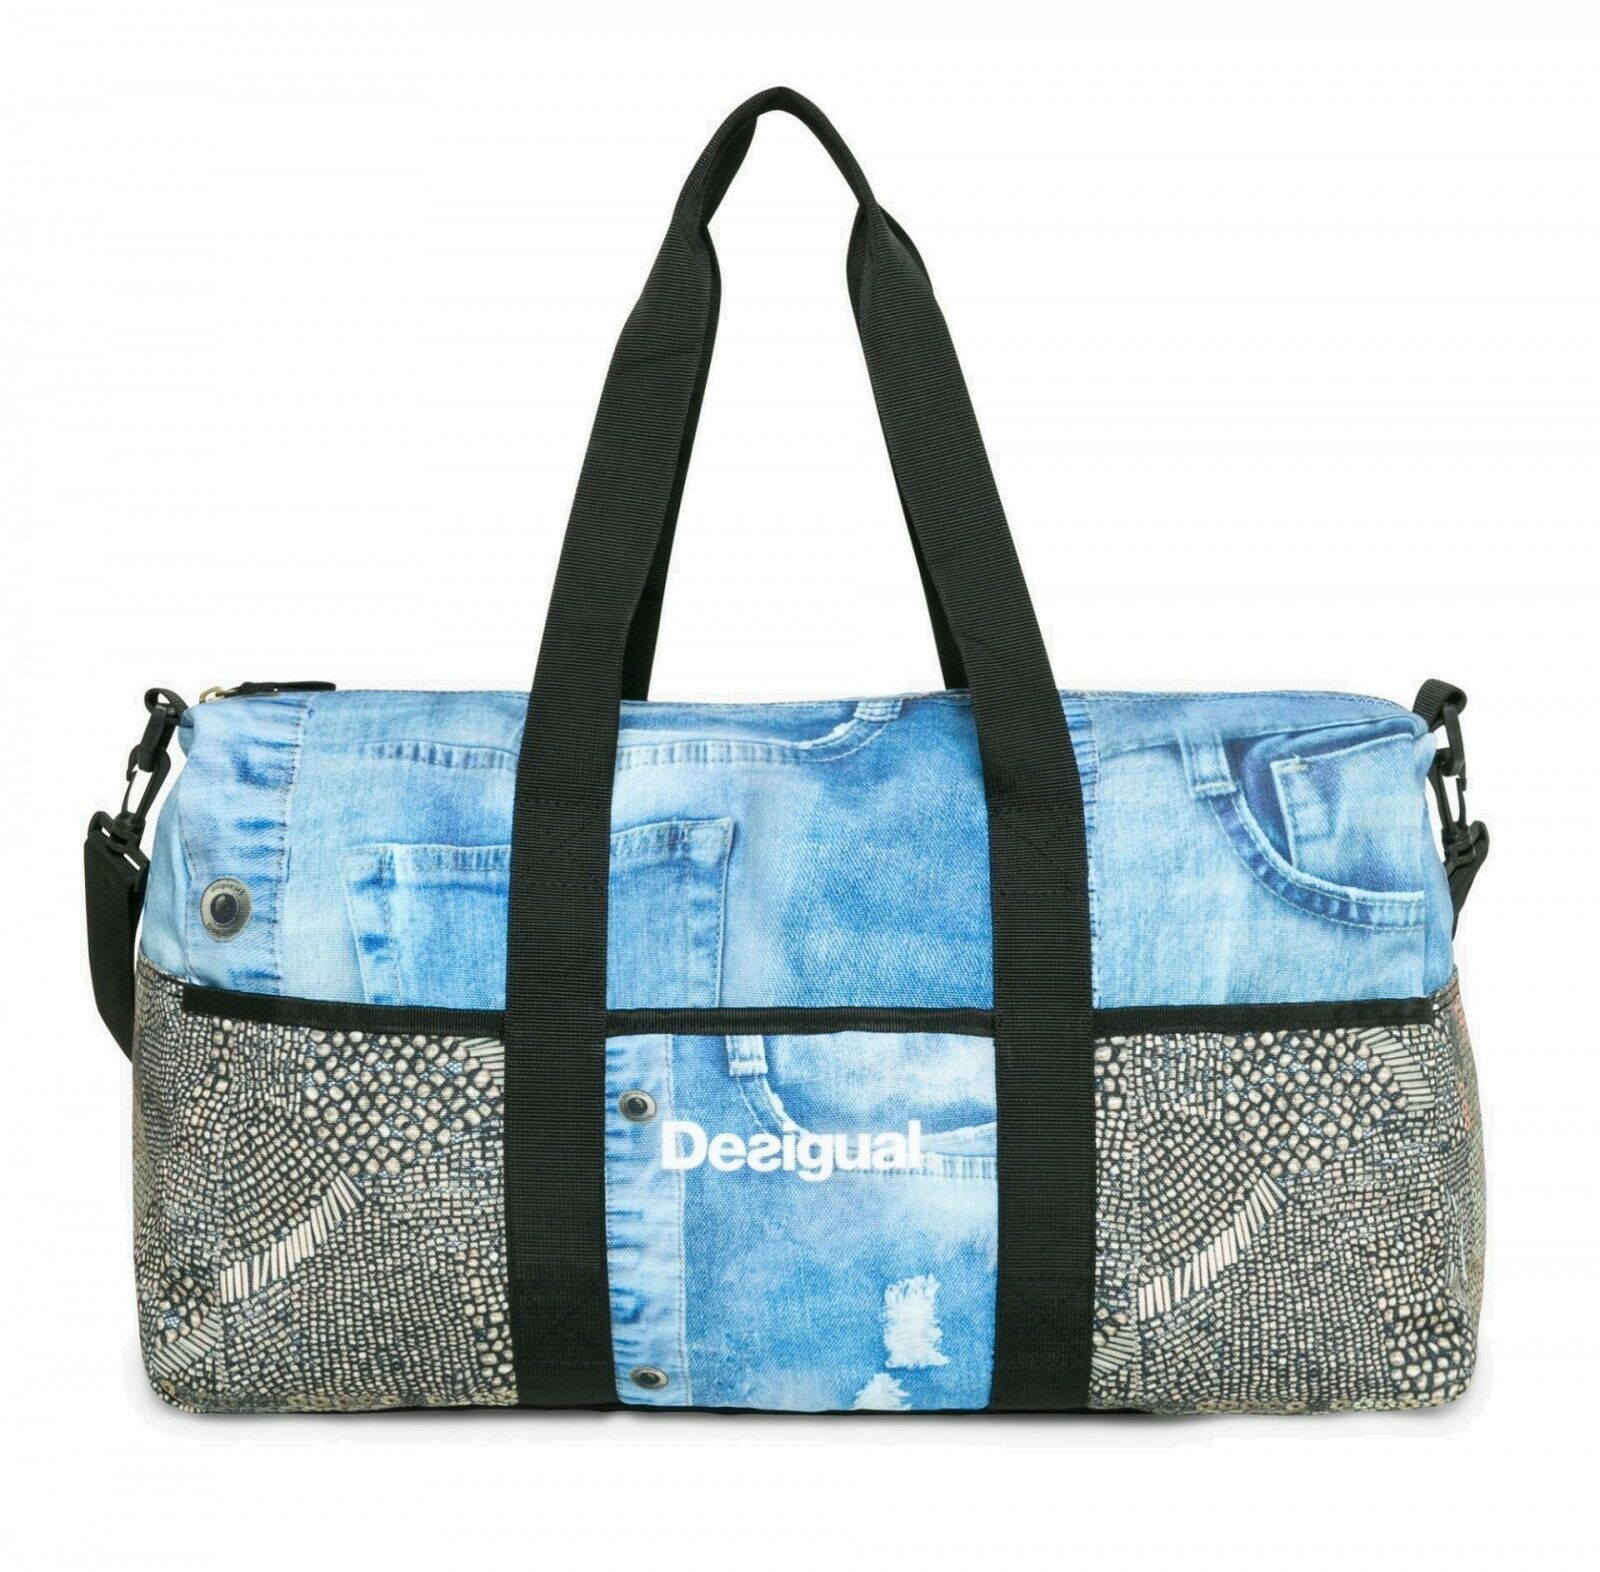 Desigual Travel Bag Bols Life Y gold Viejo